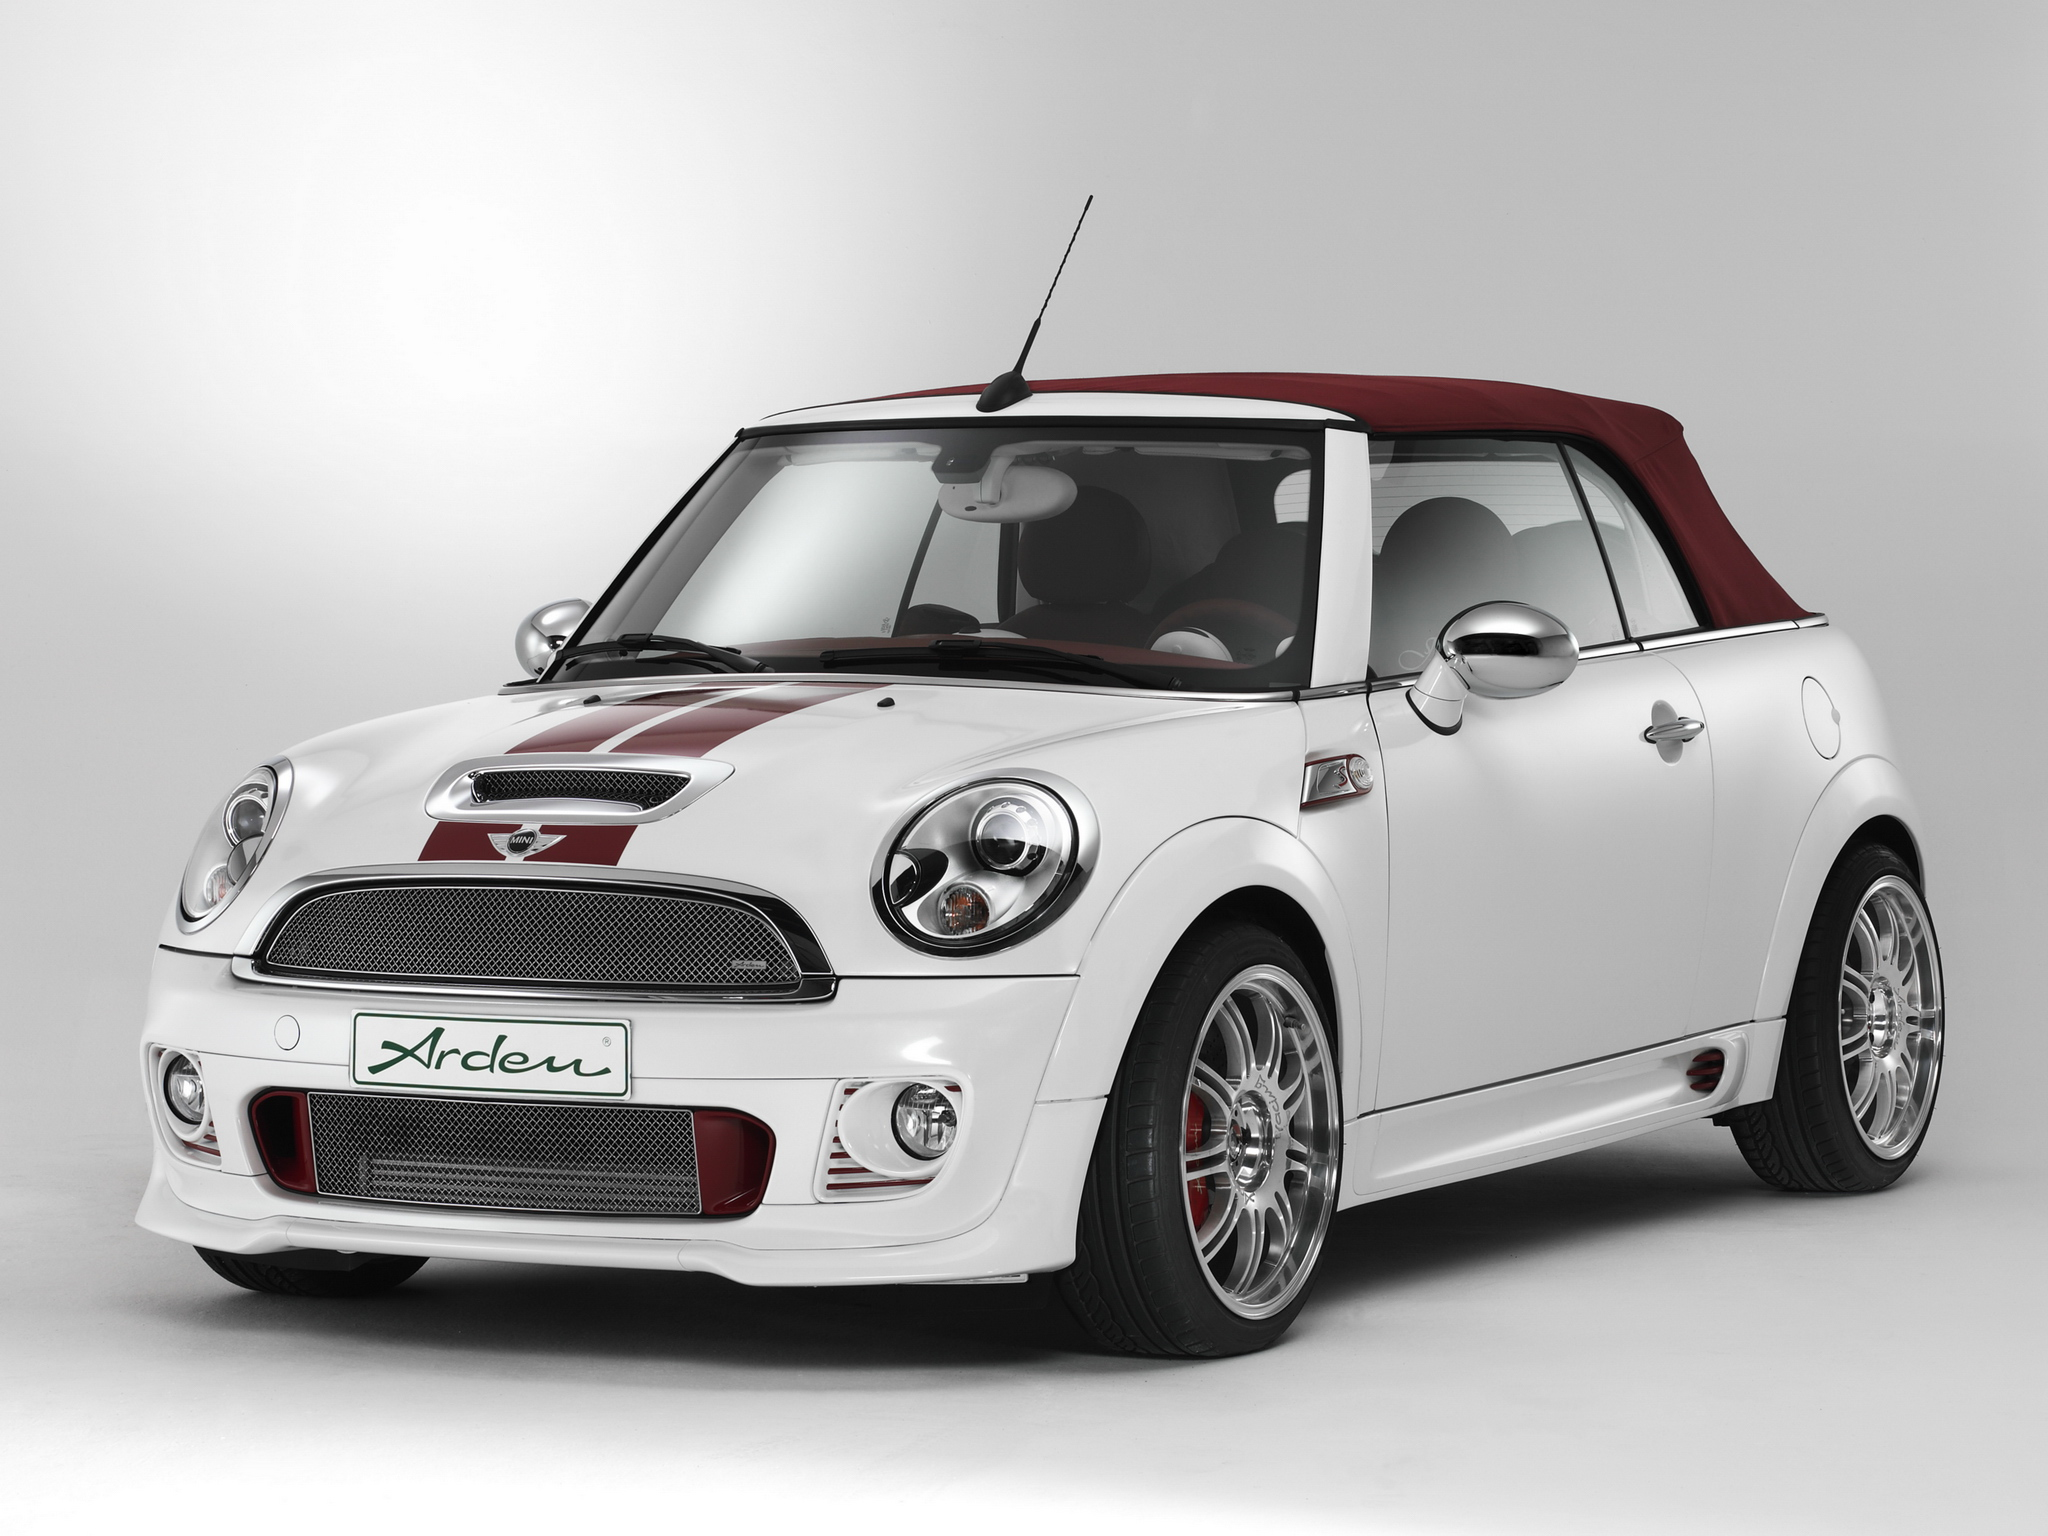 2011 arden mini cooper am4c r57 tuning convertible g wallpaper 2048x1536 173257 wallpaperup. Black Bedroom Furniture Sets. Home Design Ideas